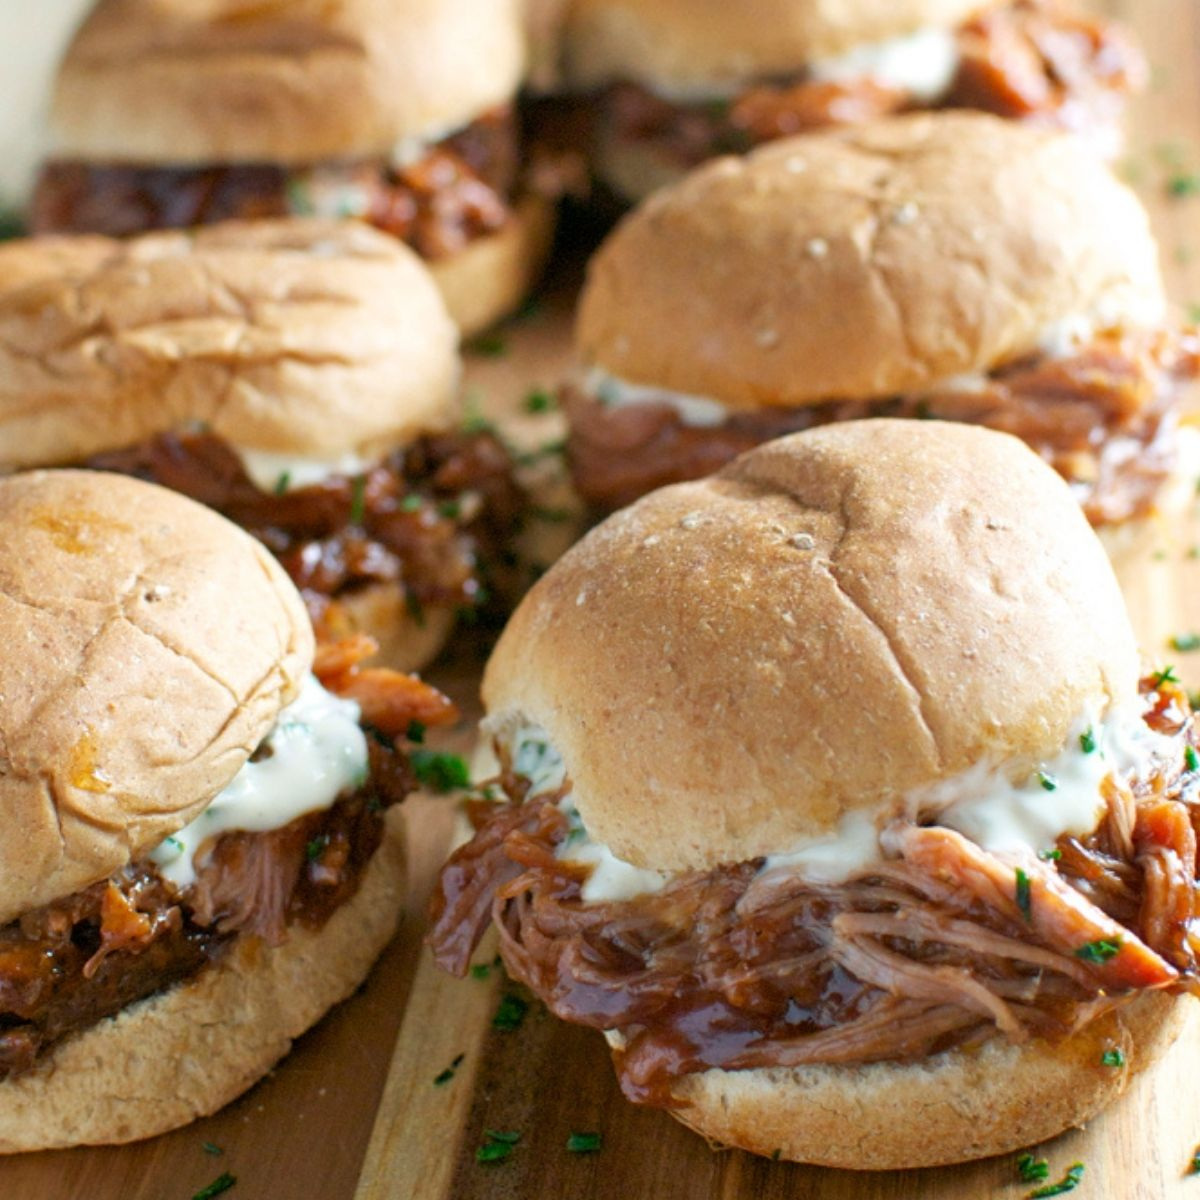 11. Pulled Pork Sliders with Garlic Aioli - DIY Cocktail Micro Wedding: Top 20 Easy Appetizers + HACKS. Part 2 of 2.